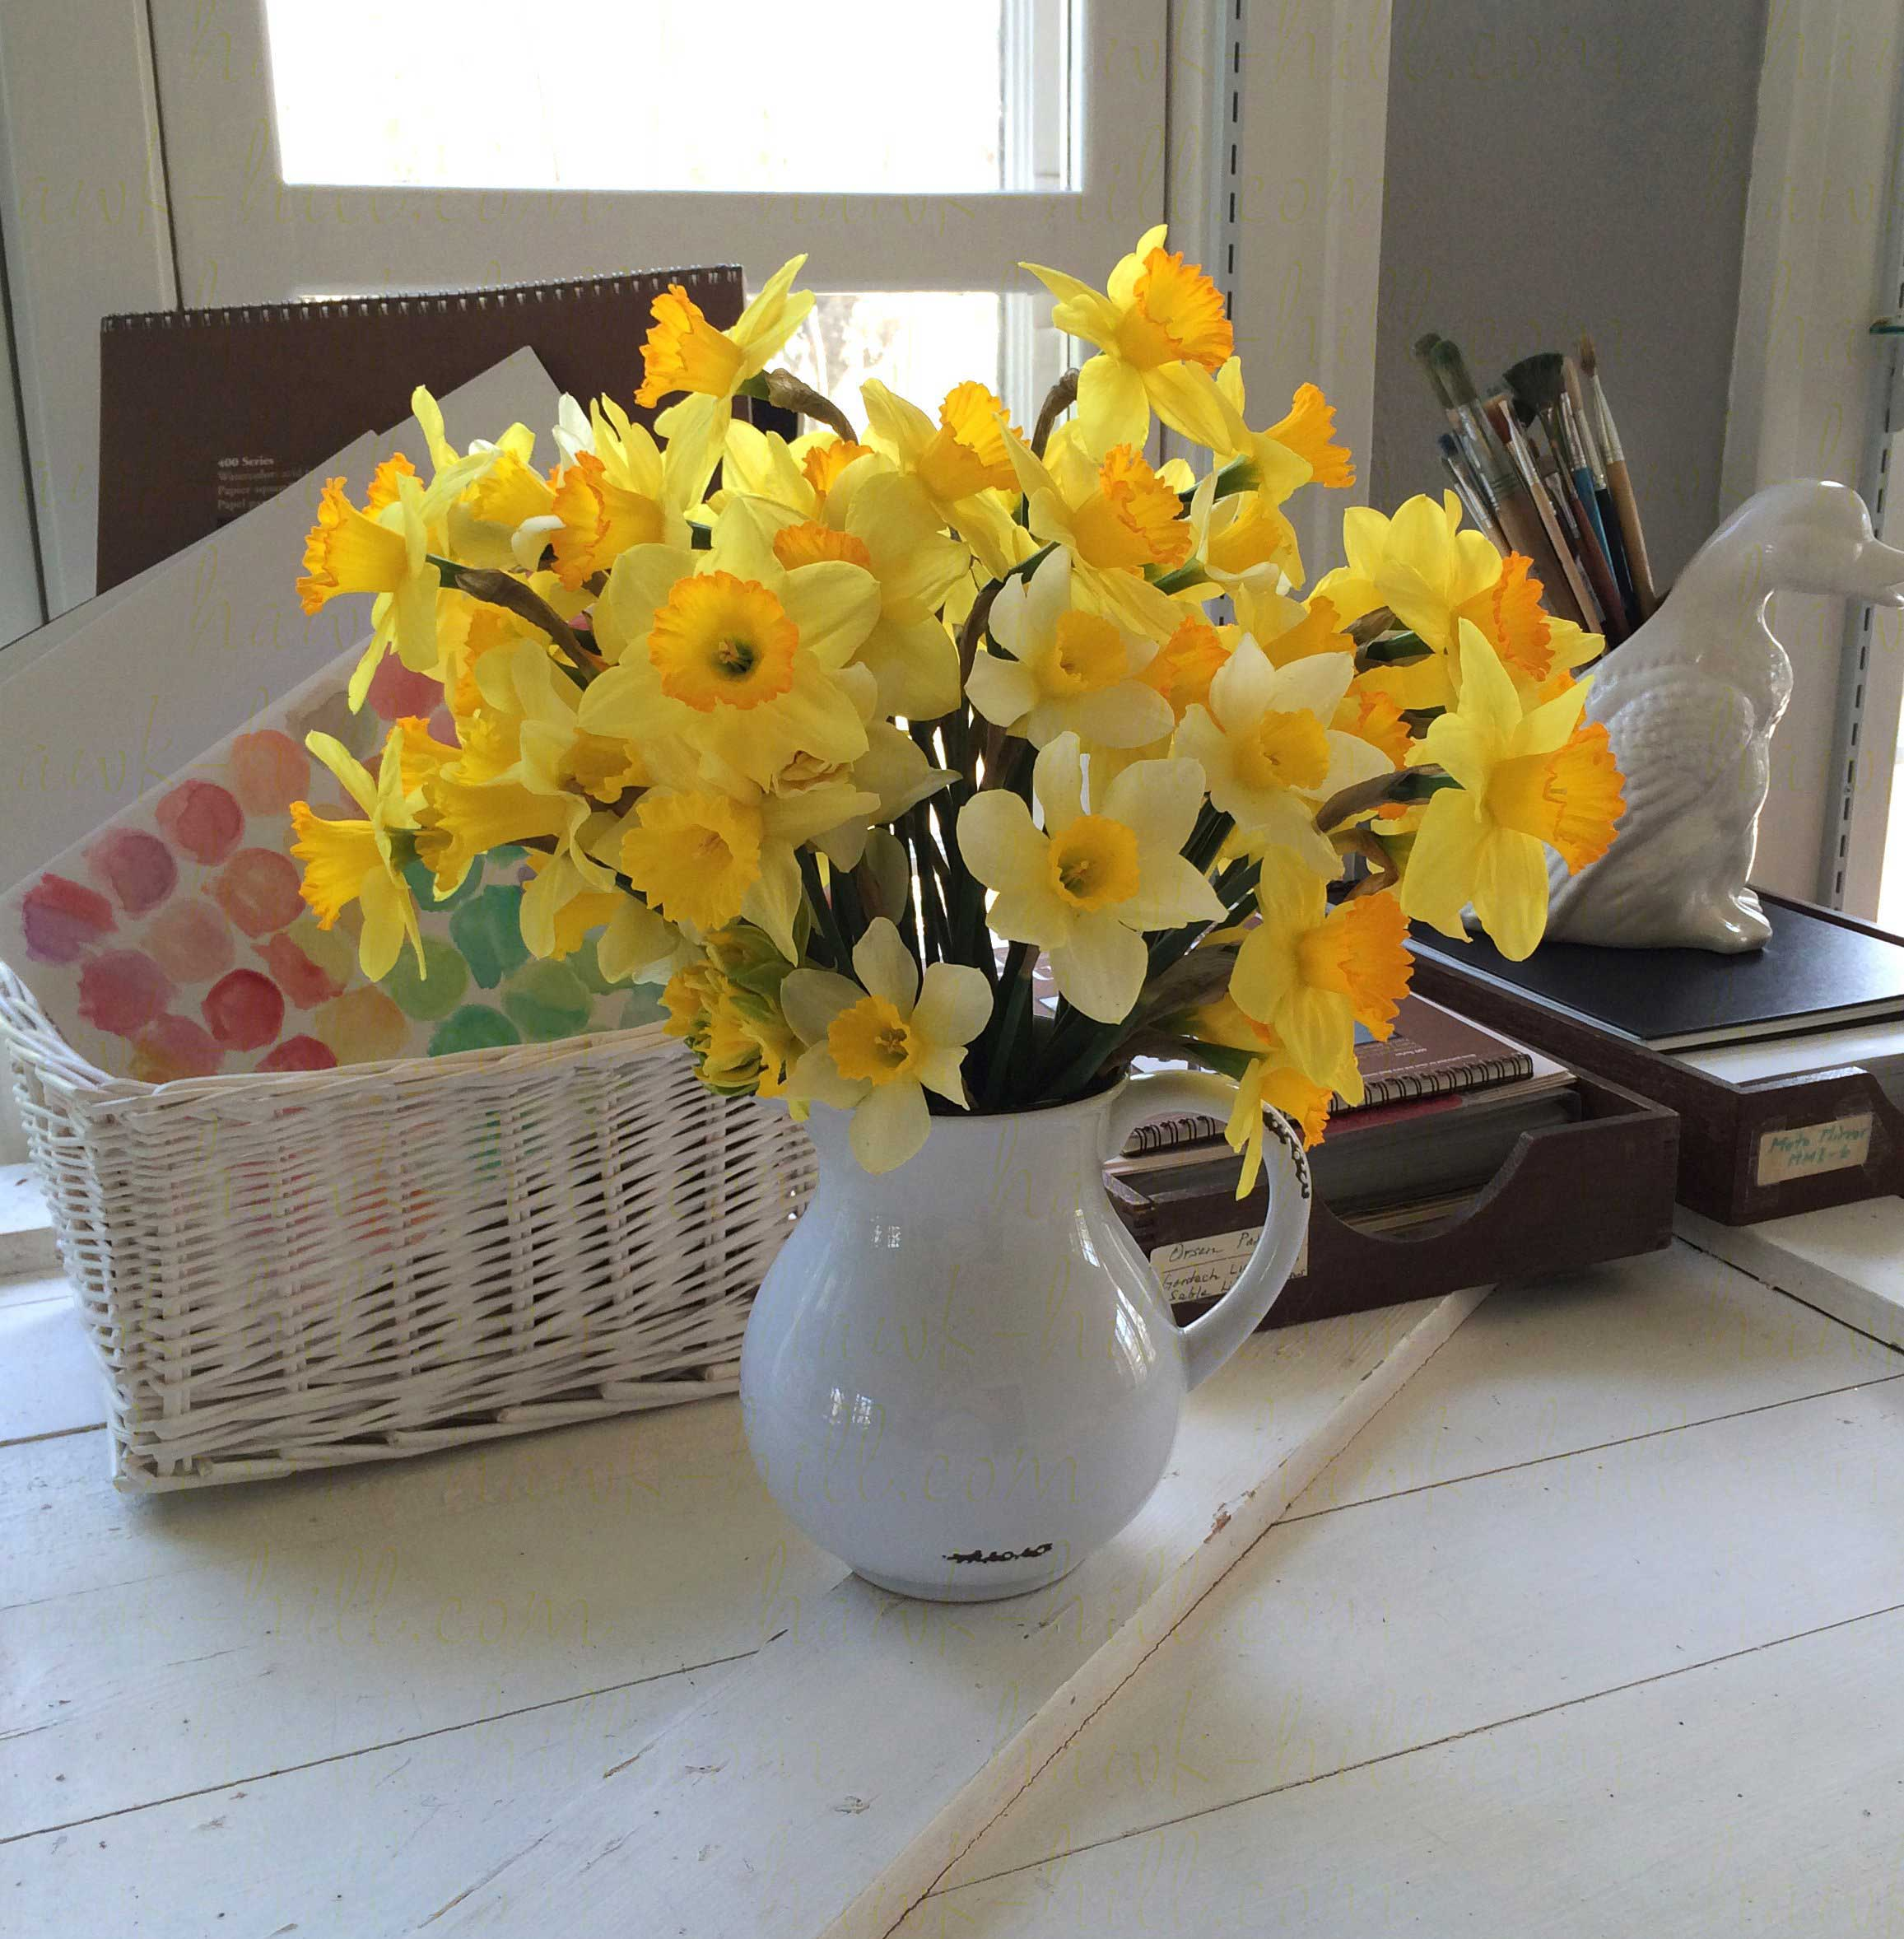 King Alfred Daffodils in a bouquet of cut flowers.